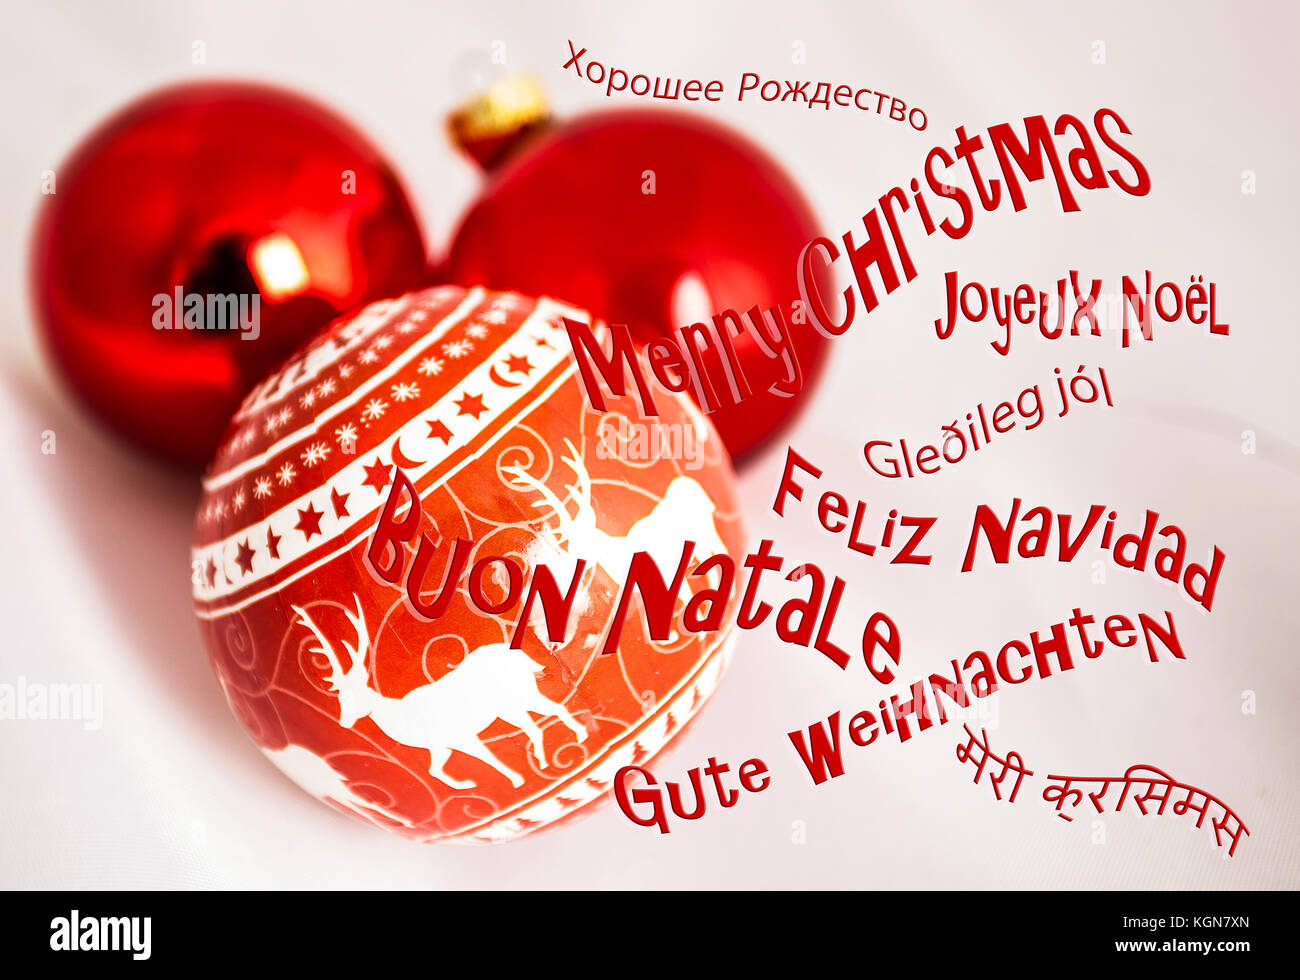 Group of christmas tree decorations in studio on white background with greeting in many languages. - Stock Image